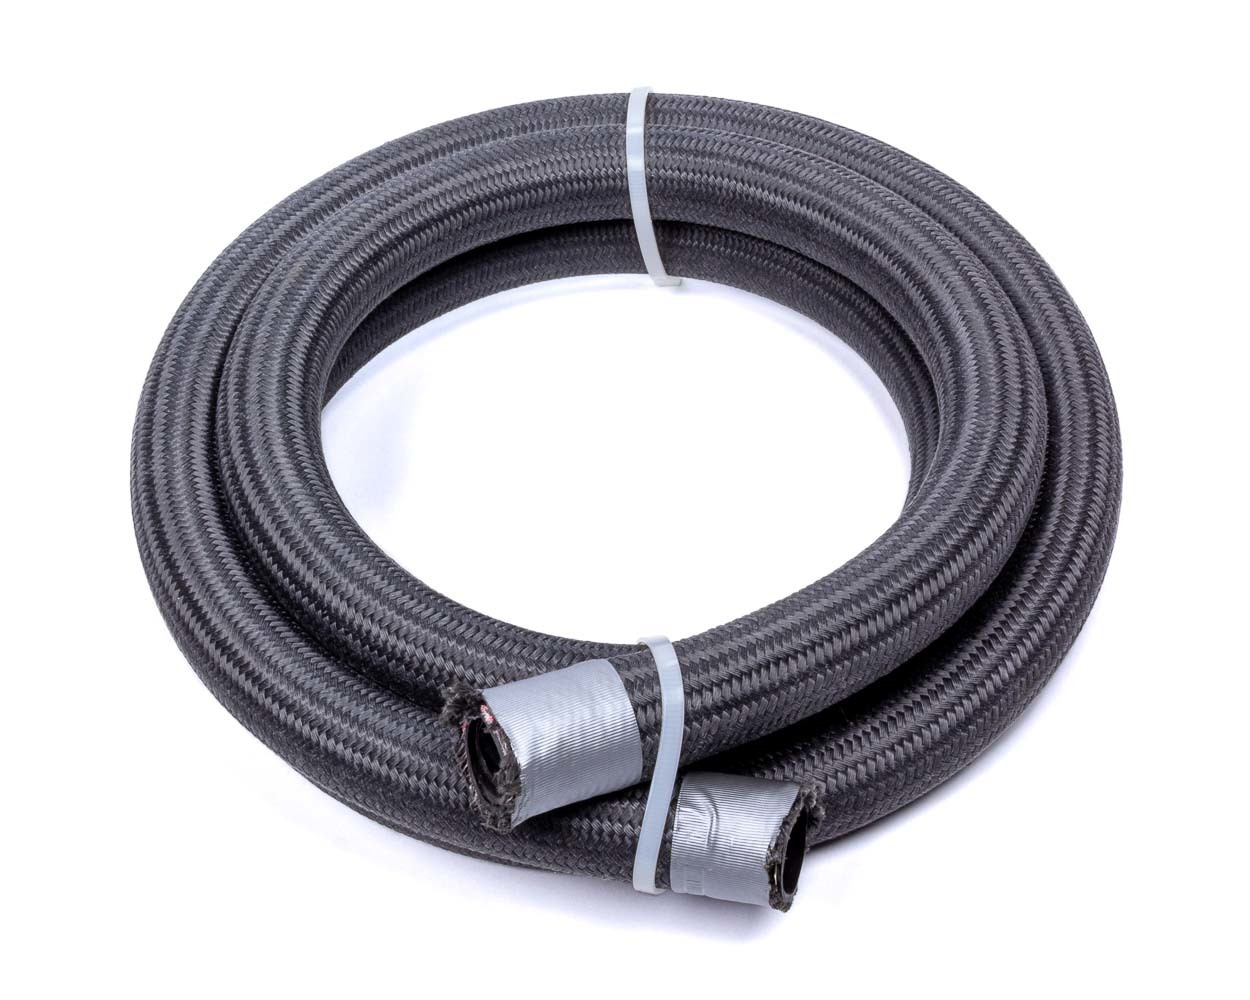 Fragola 2702012 Hose, 12 AN, 20 ft, Braided Fire Retardant Fabric, PTFE, Black, Each